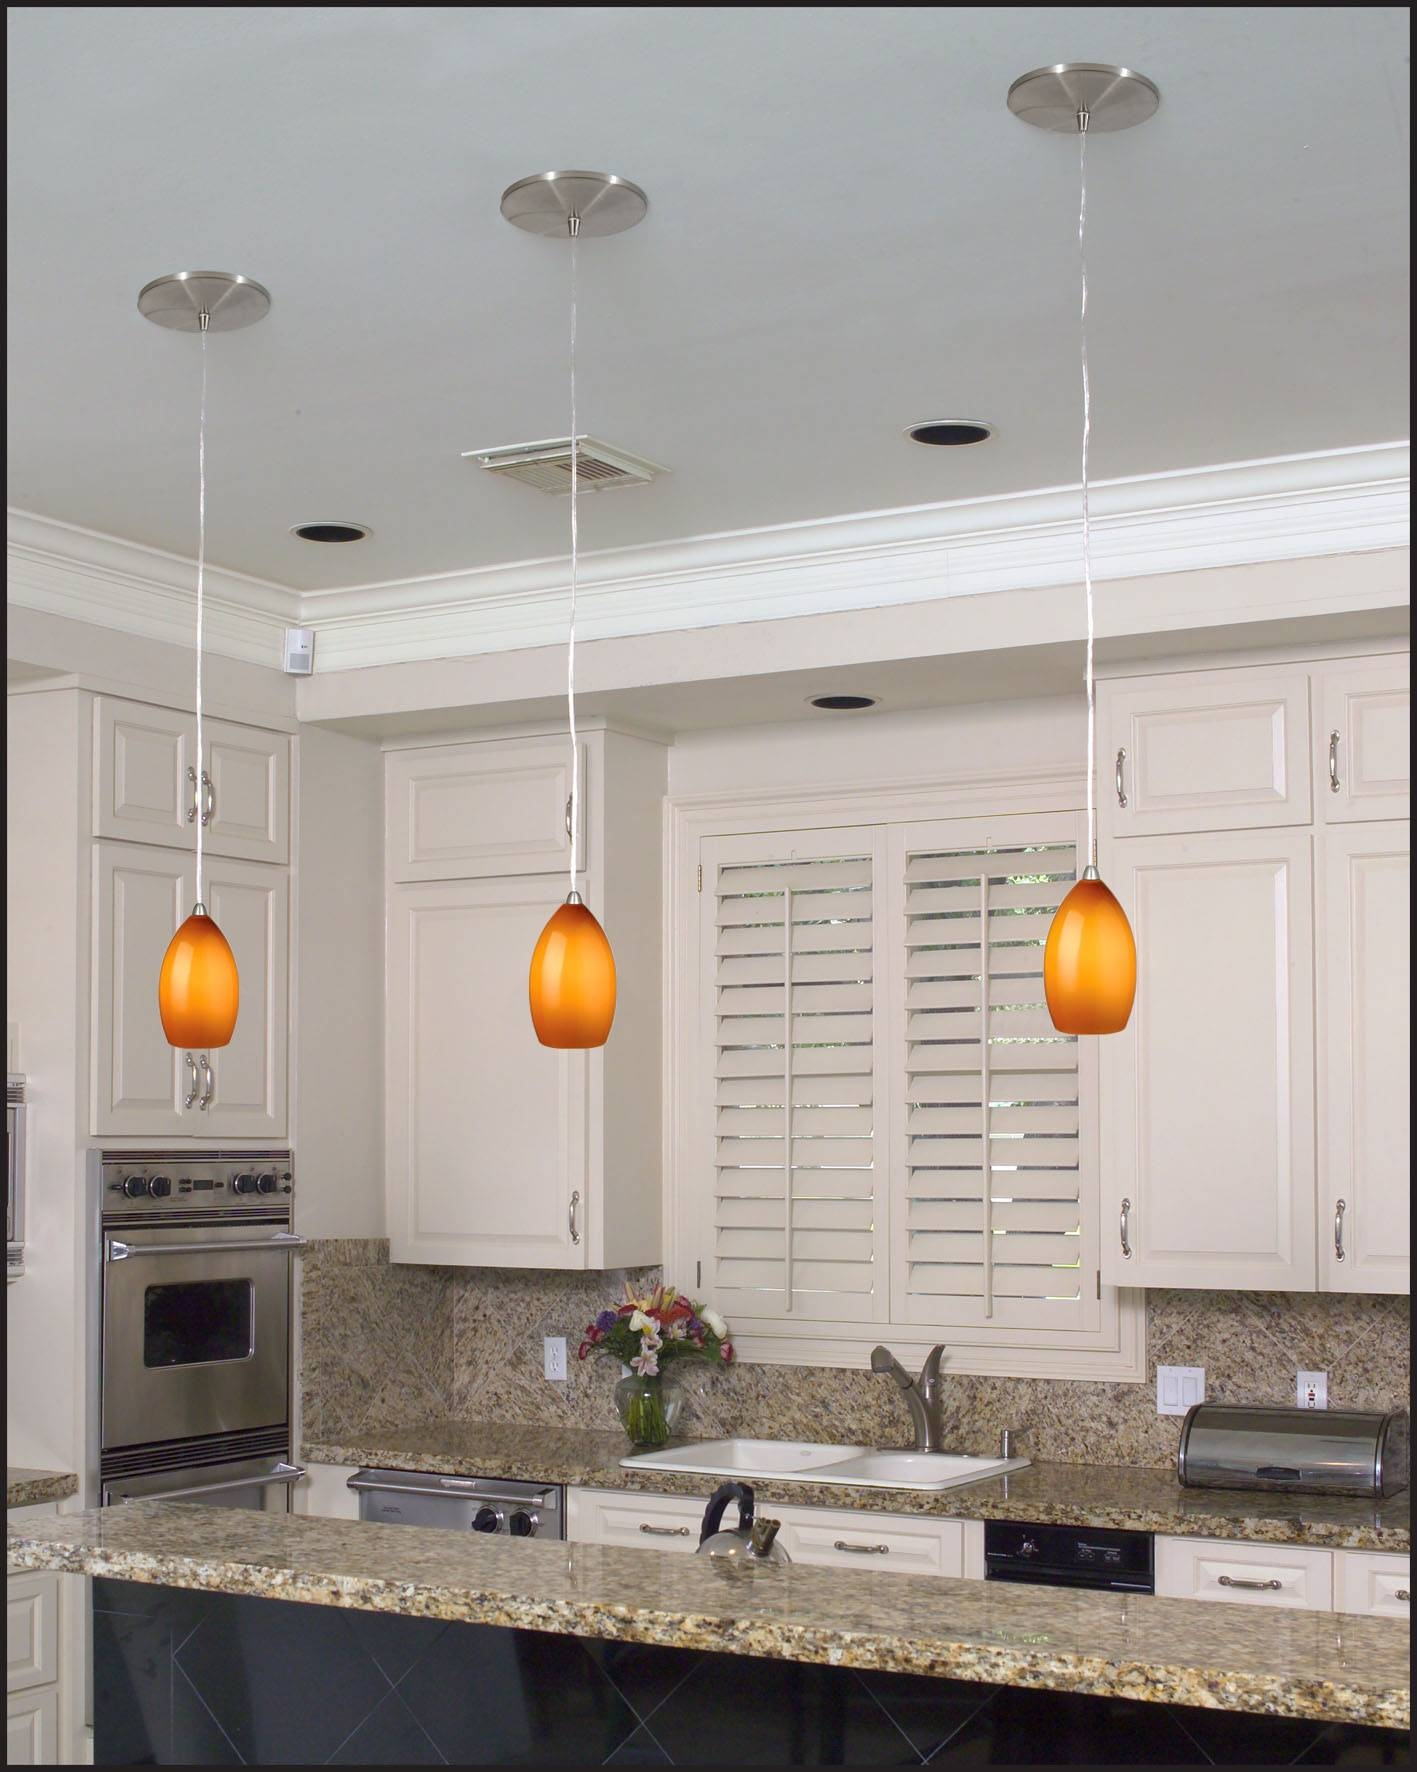 Convert A Recessed Light To A Pendant | Tribune Content Agency Throughout Recessed Lights Pendants (View 12 of 15)